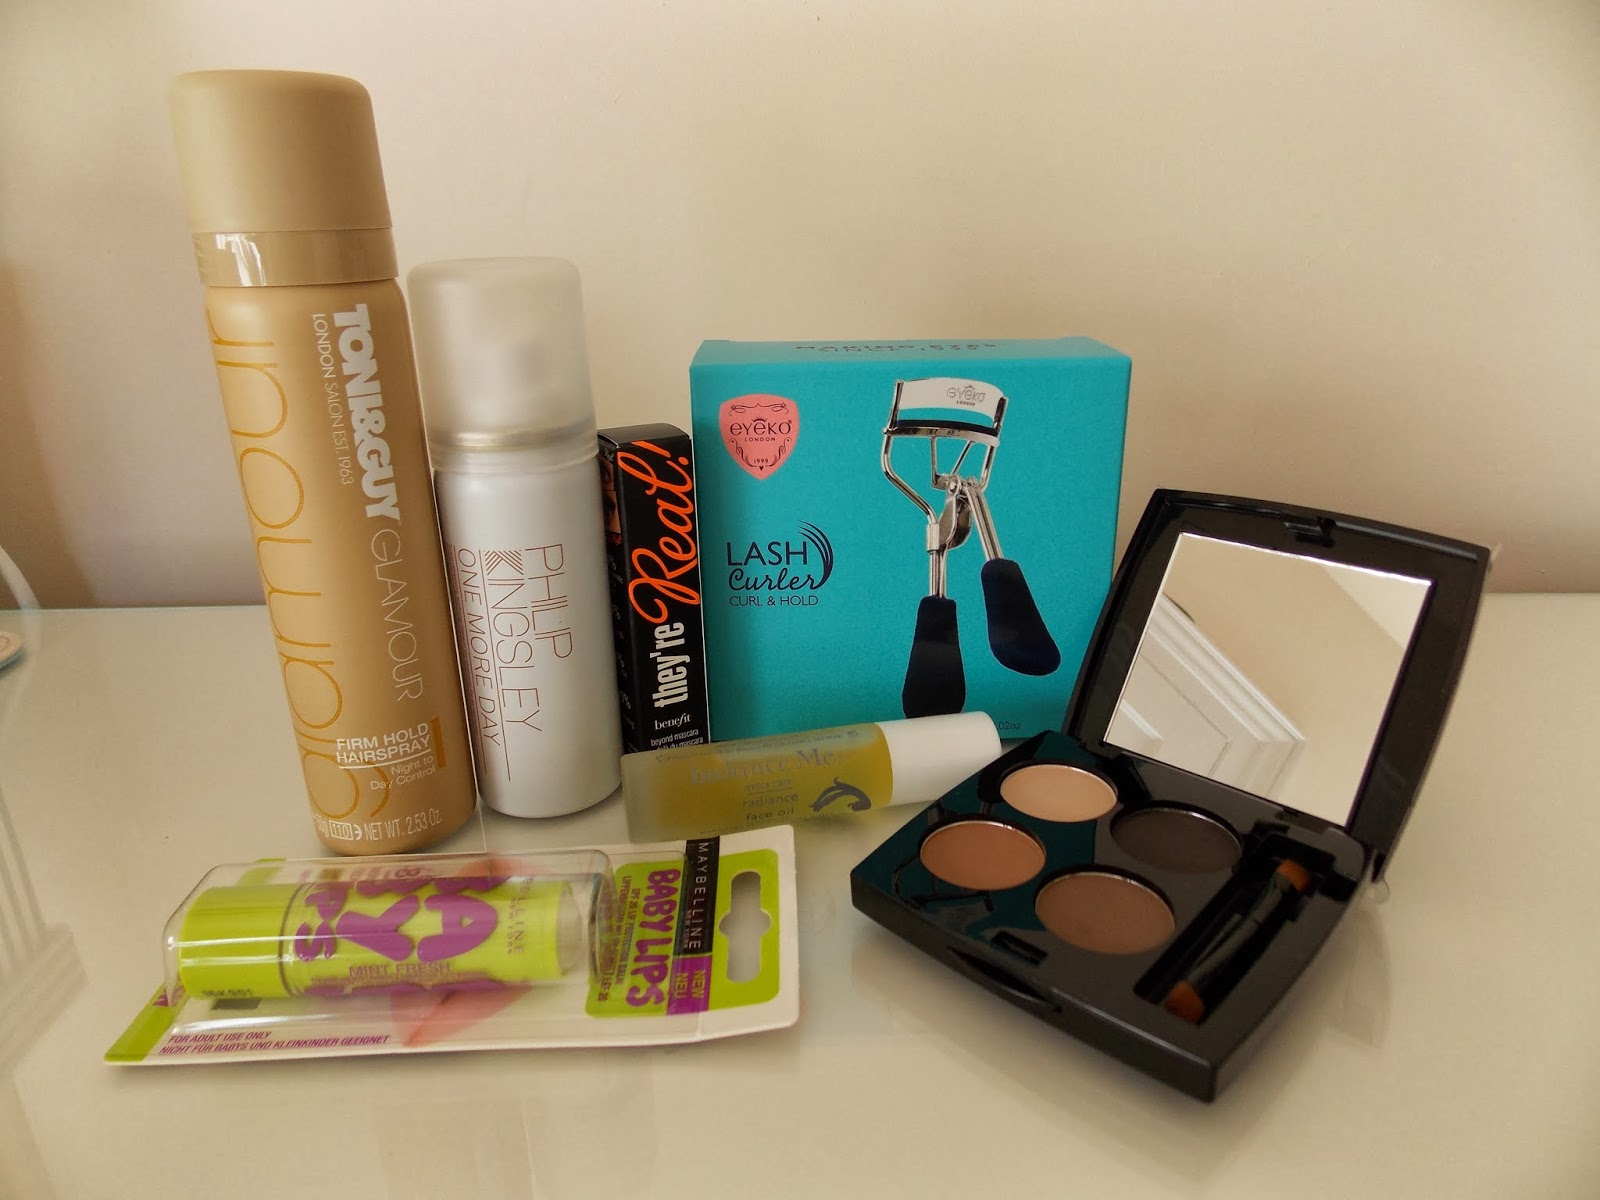 Latest in Beauty: Glamour Beauty Edit - the contents out of the box